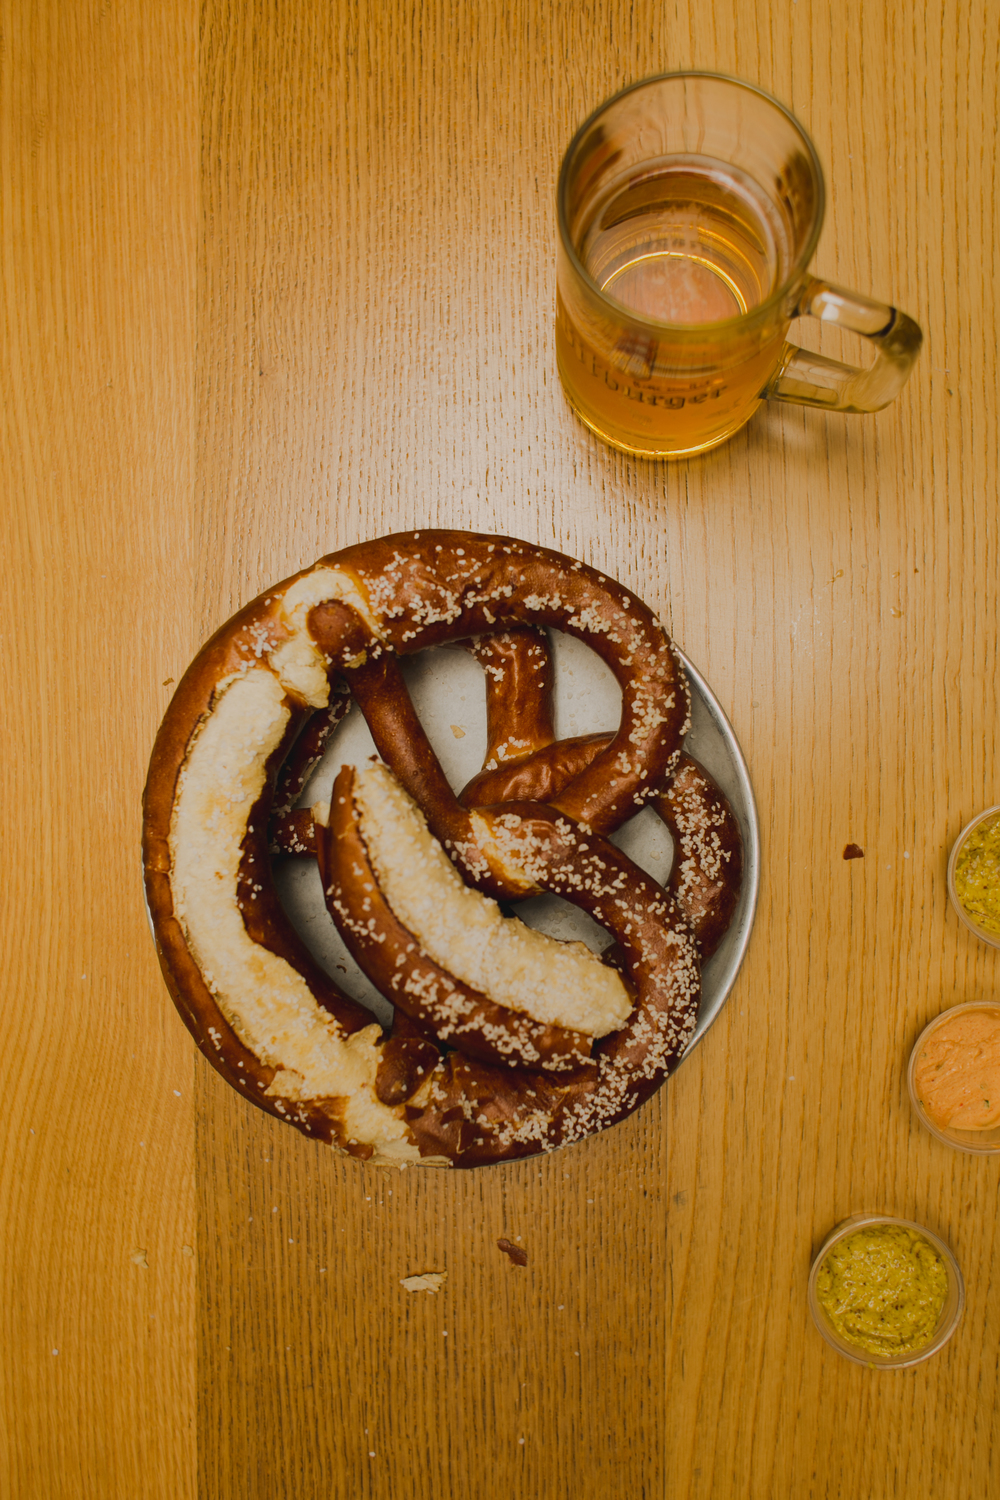 Yummmm, home made pretzels and beer!